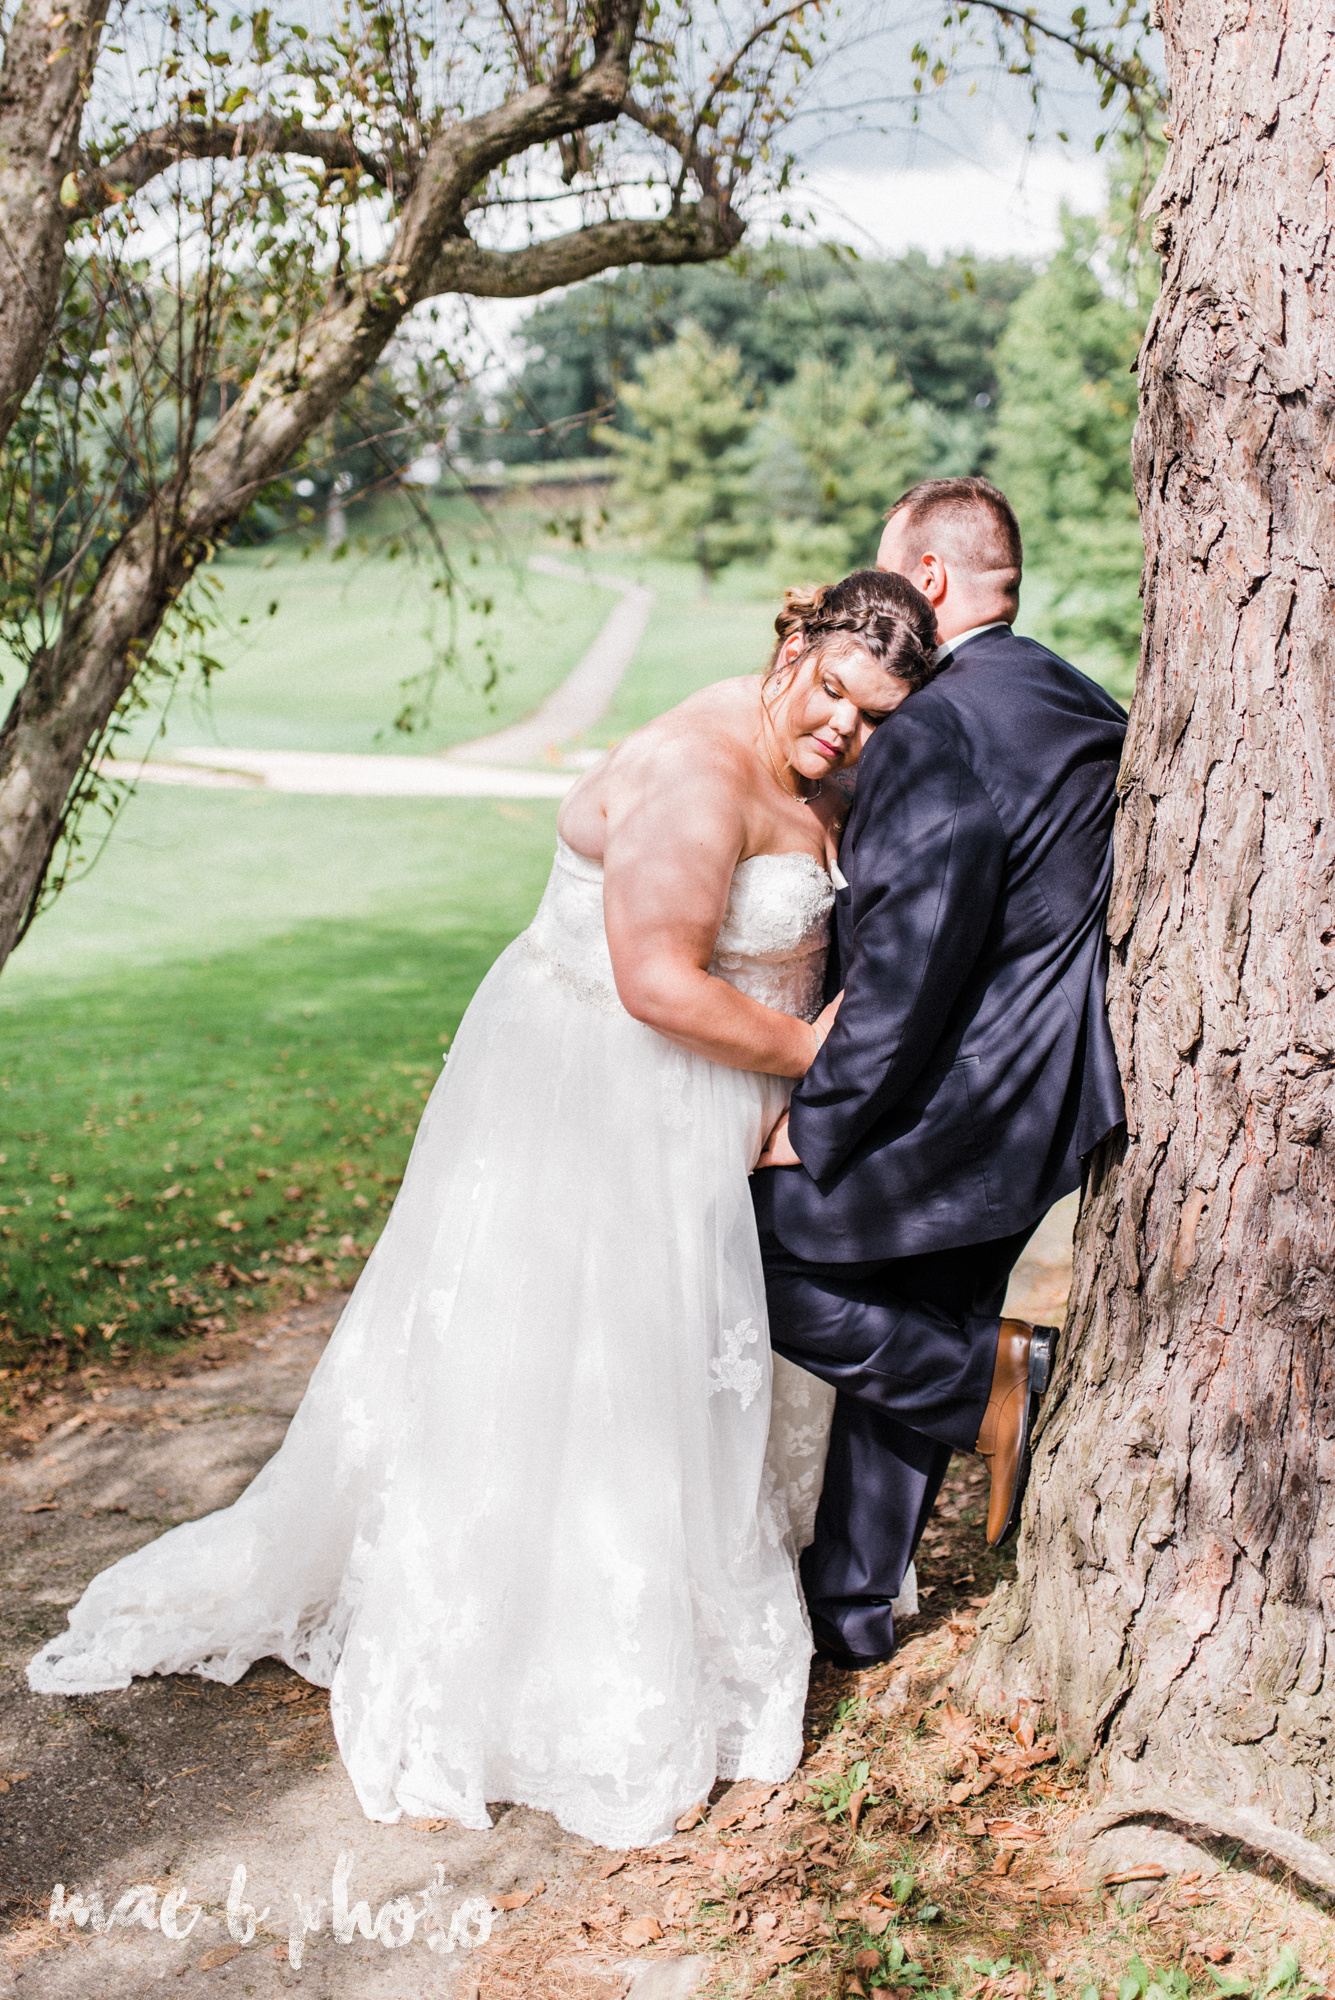 Kristina and ryan's personal vintage glam fall wedding at disalvo's station restaurant and the arnold palmer latrobe country club in latrobe, pa photographed by youngstown wedding photographer mae b photo-42.jpg